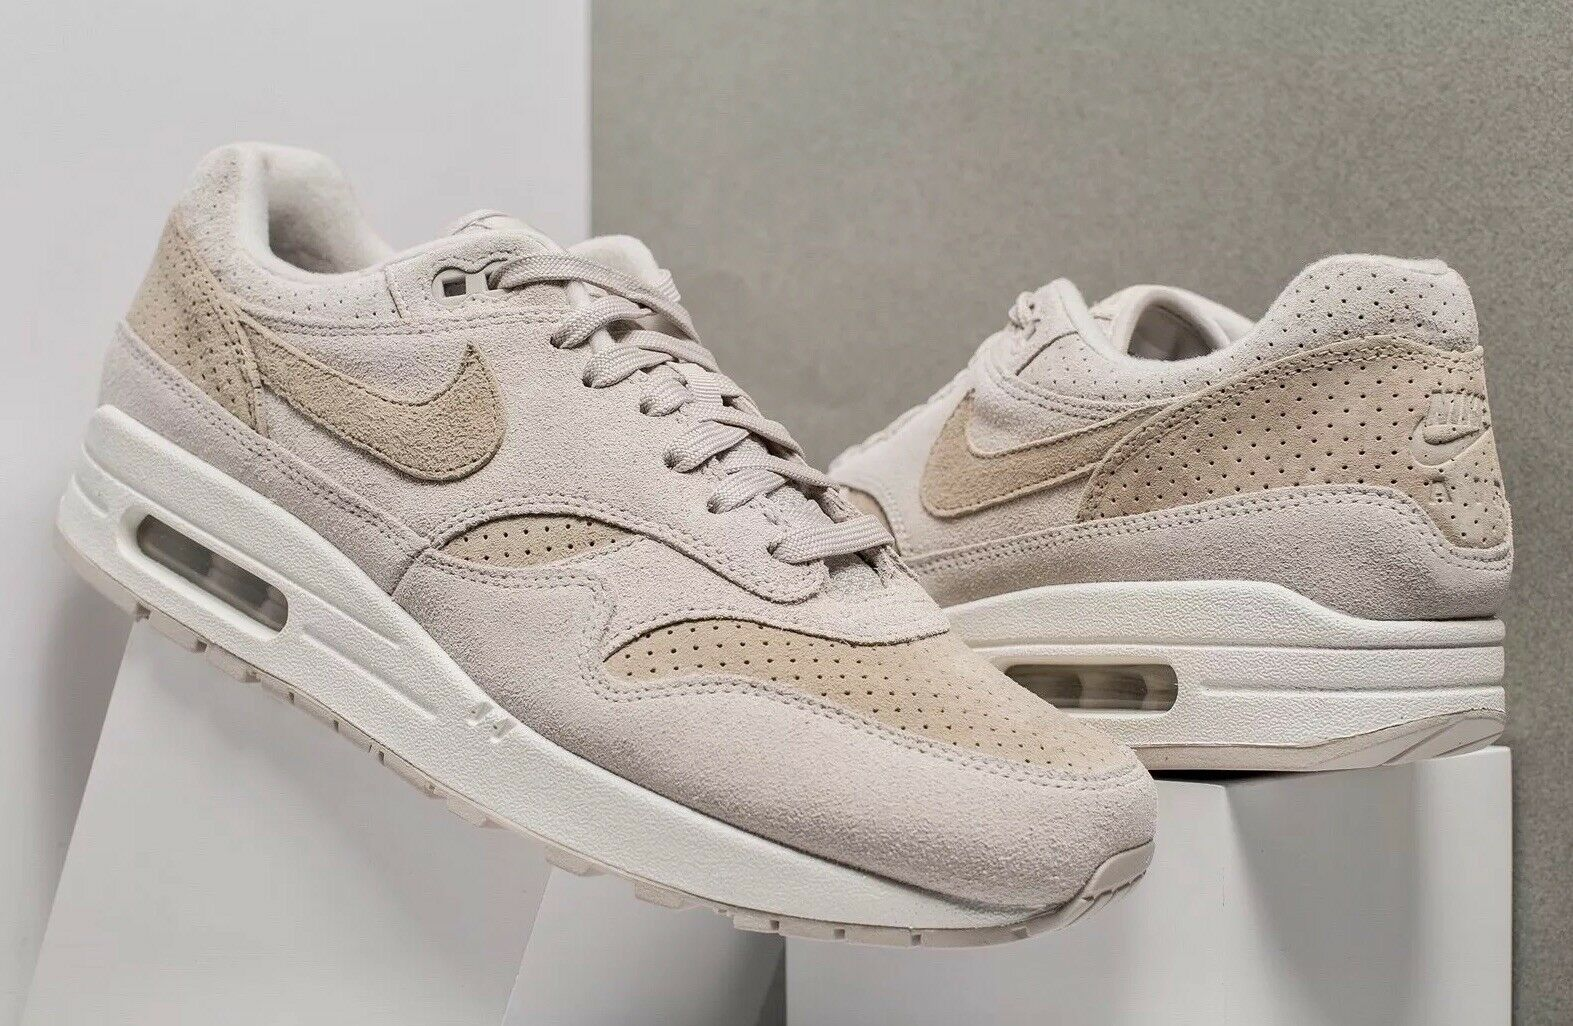 Nike Air Max 1 Premium 'Desert Sand' 875844-004 Größe UK 14 EU 49.5 US 15 New